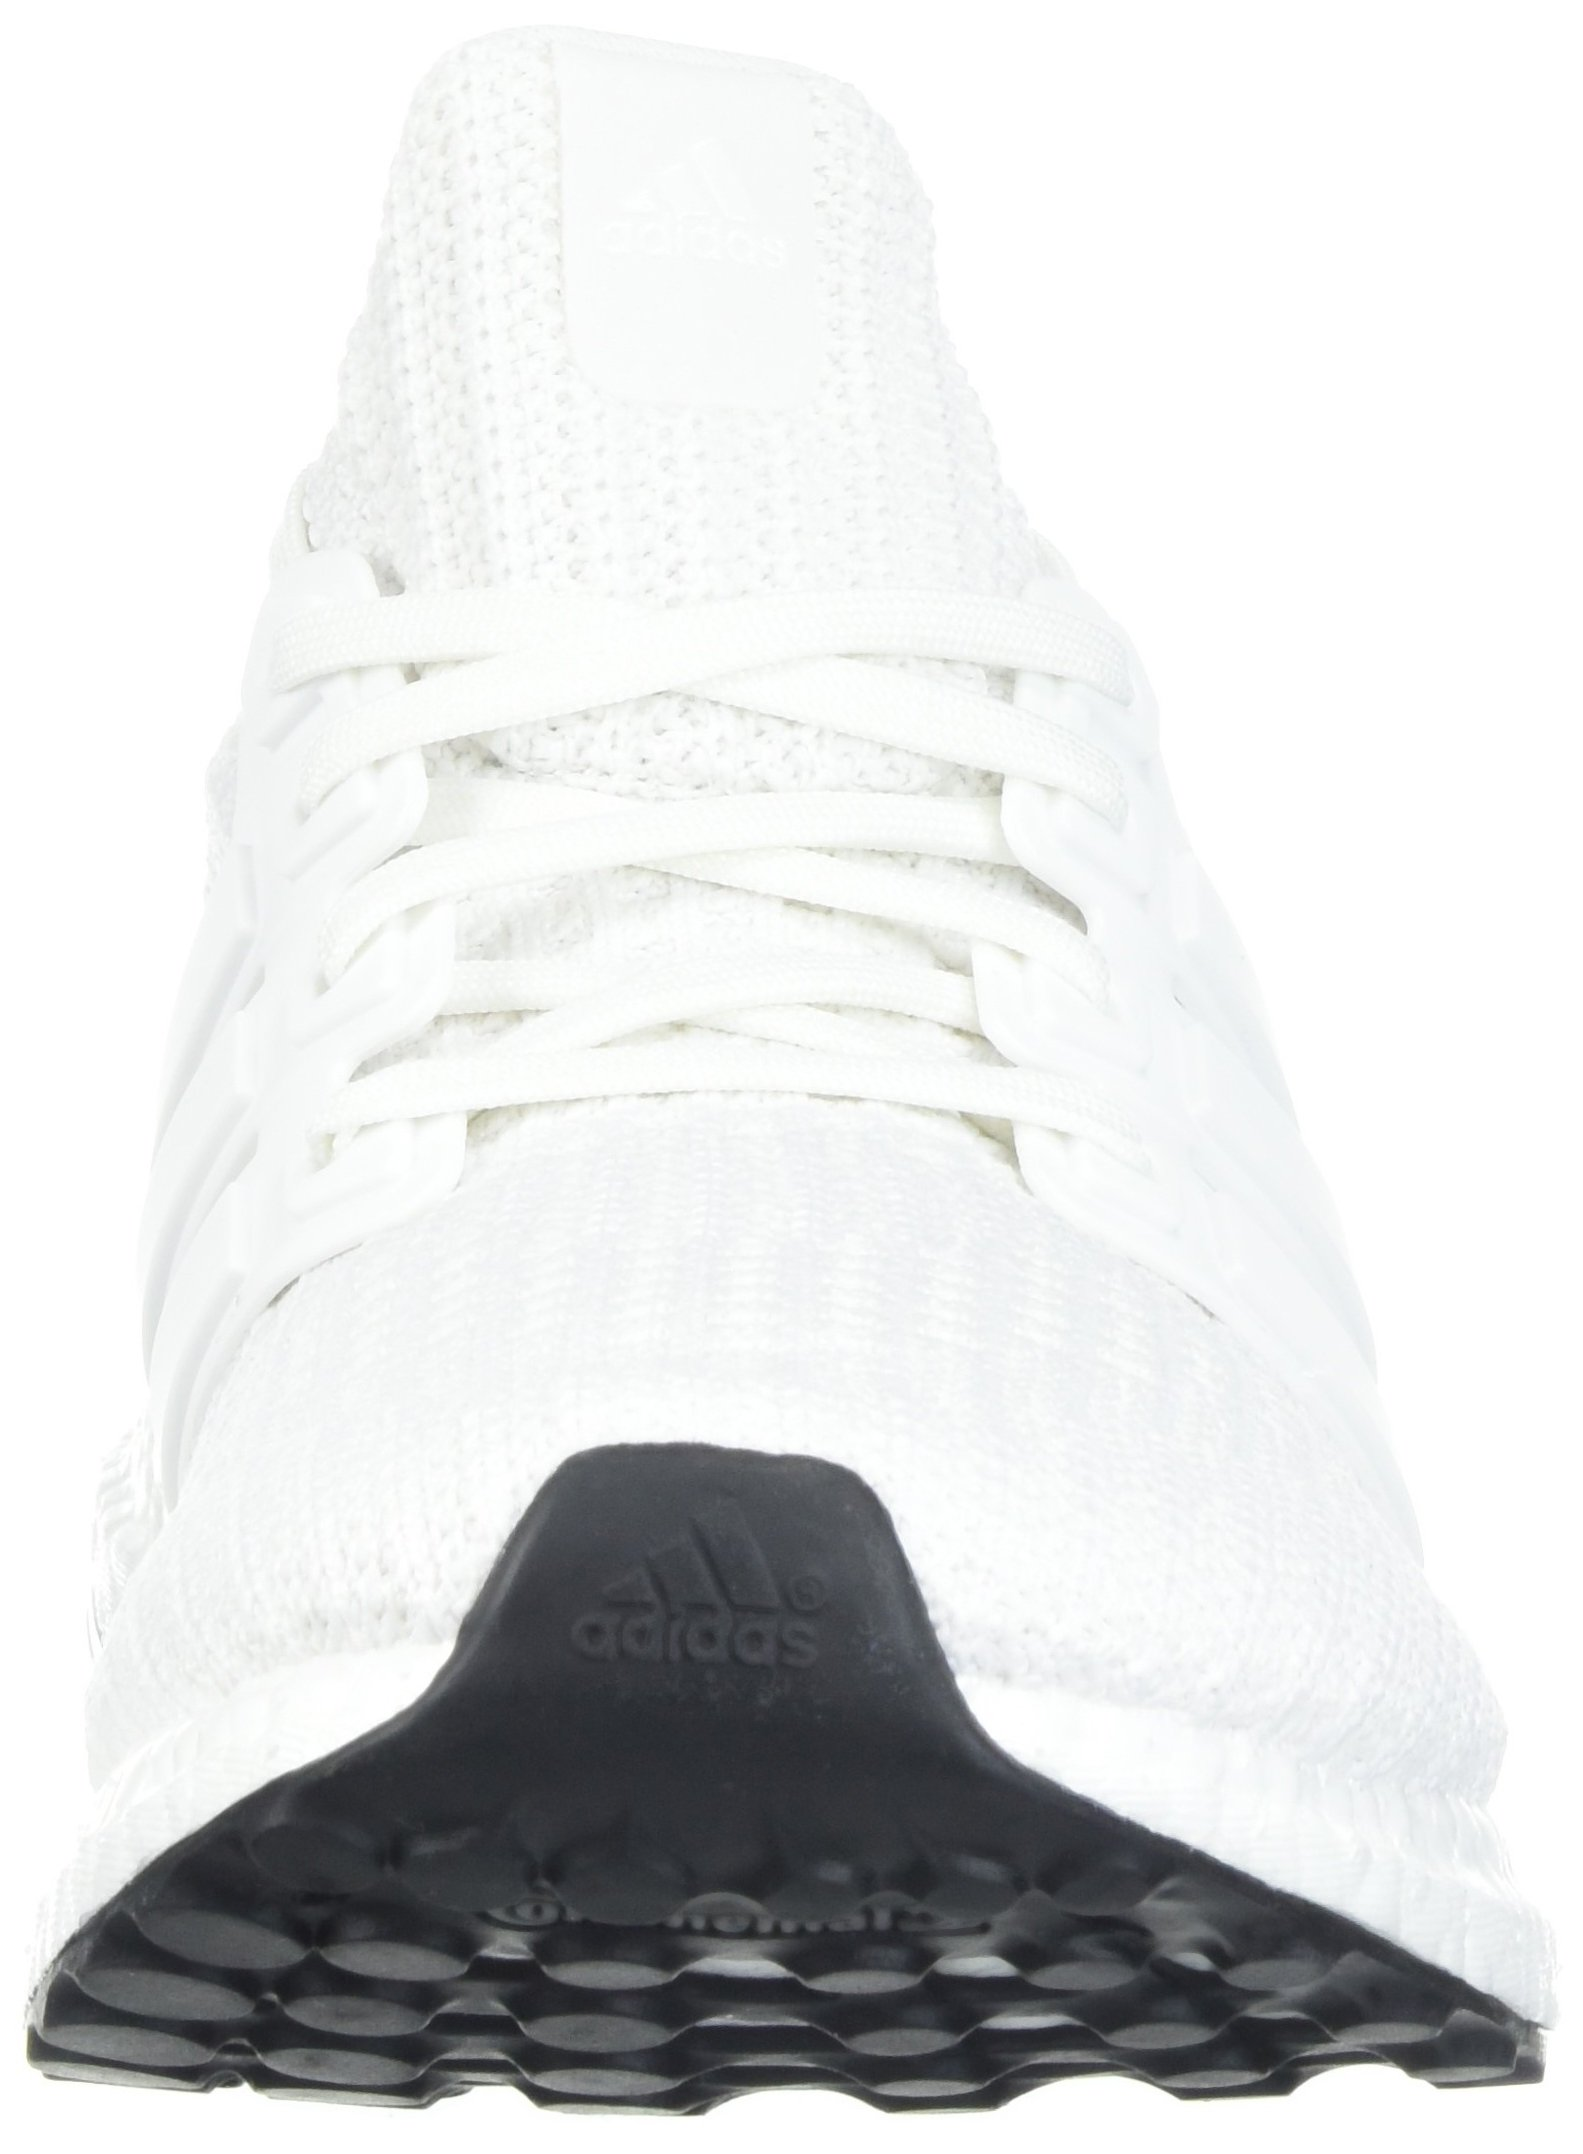 adidas Men's Ultraboost Road Running Shoe, White/White/White, 6.5 M US by adidas (Image #4)